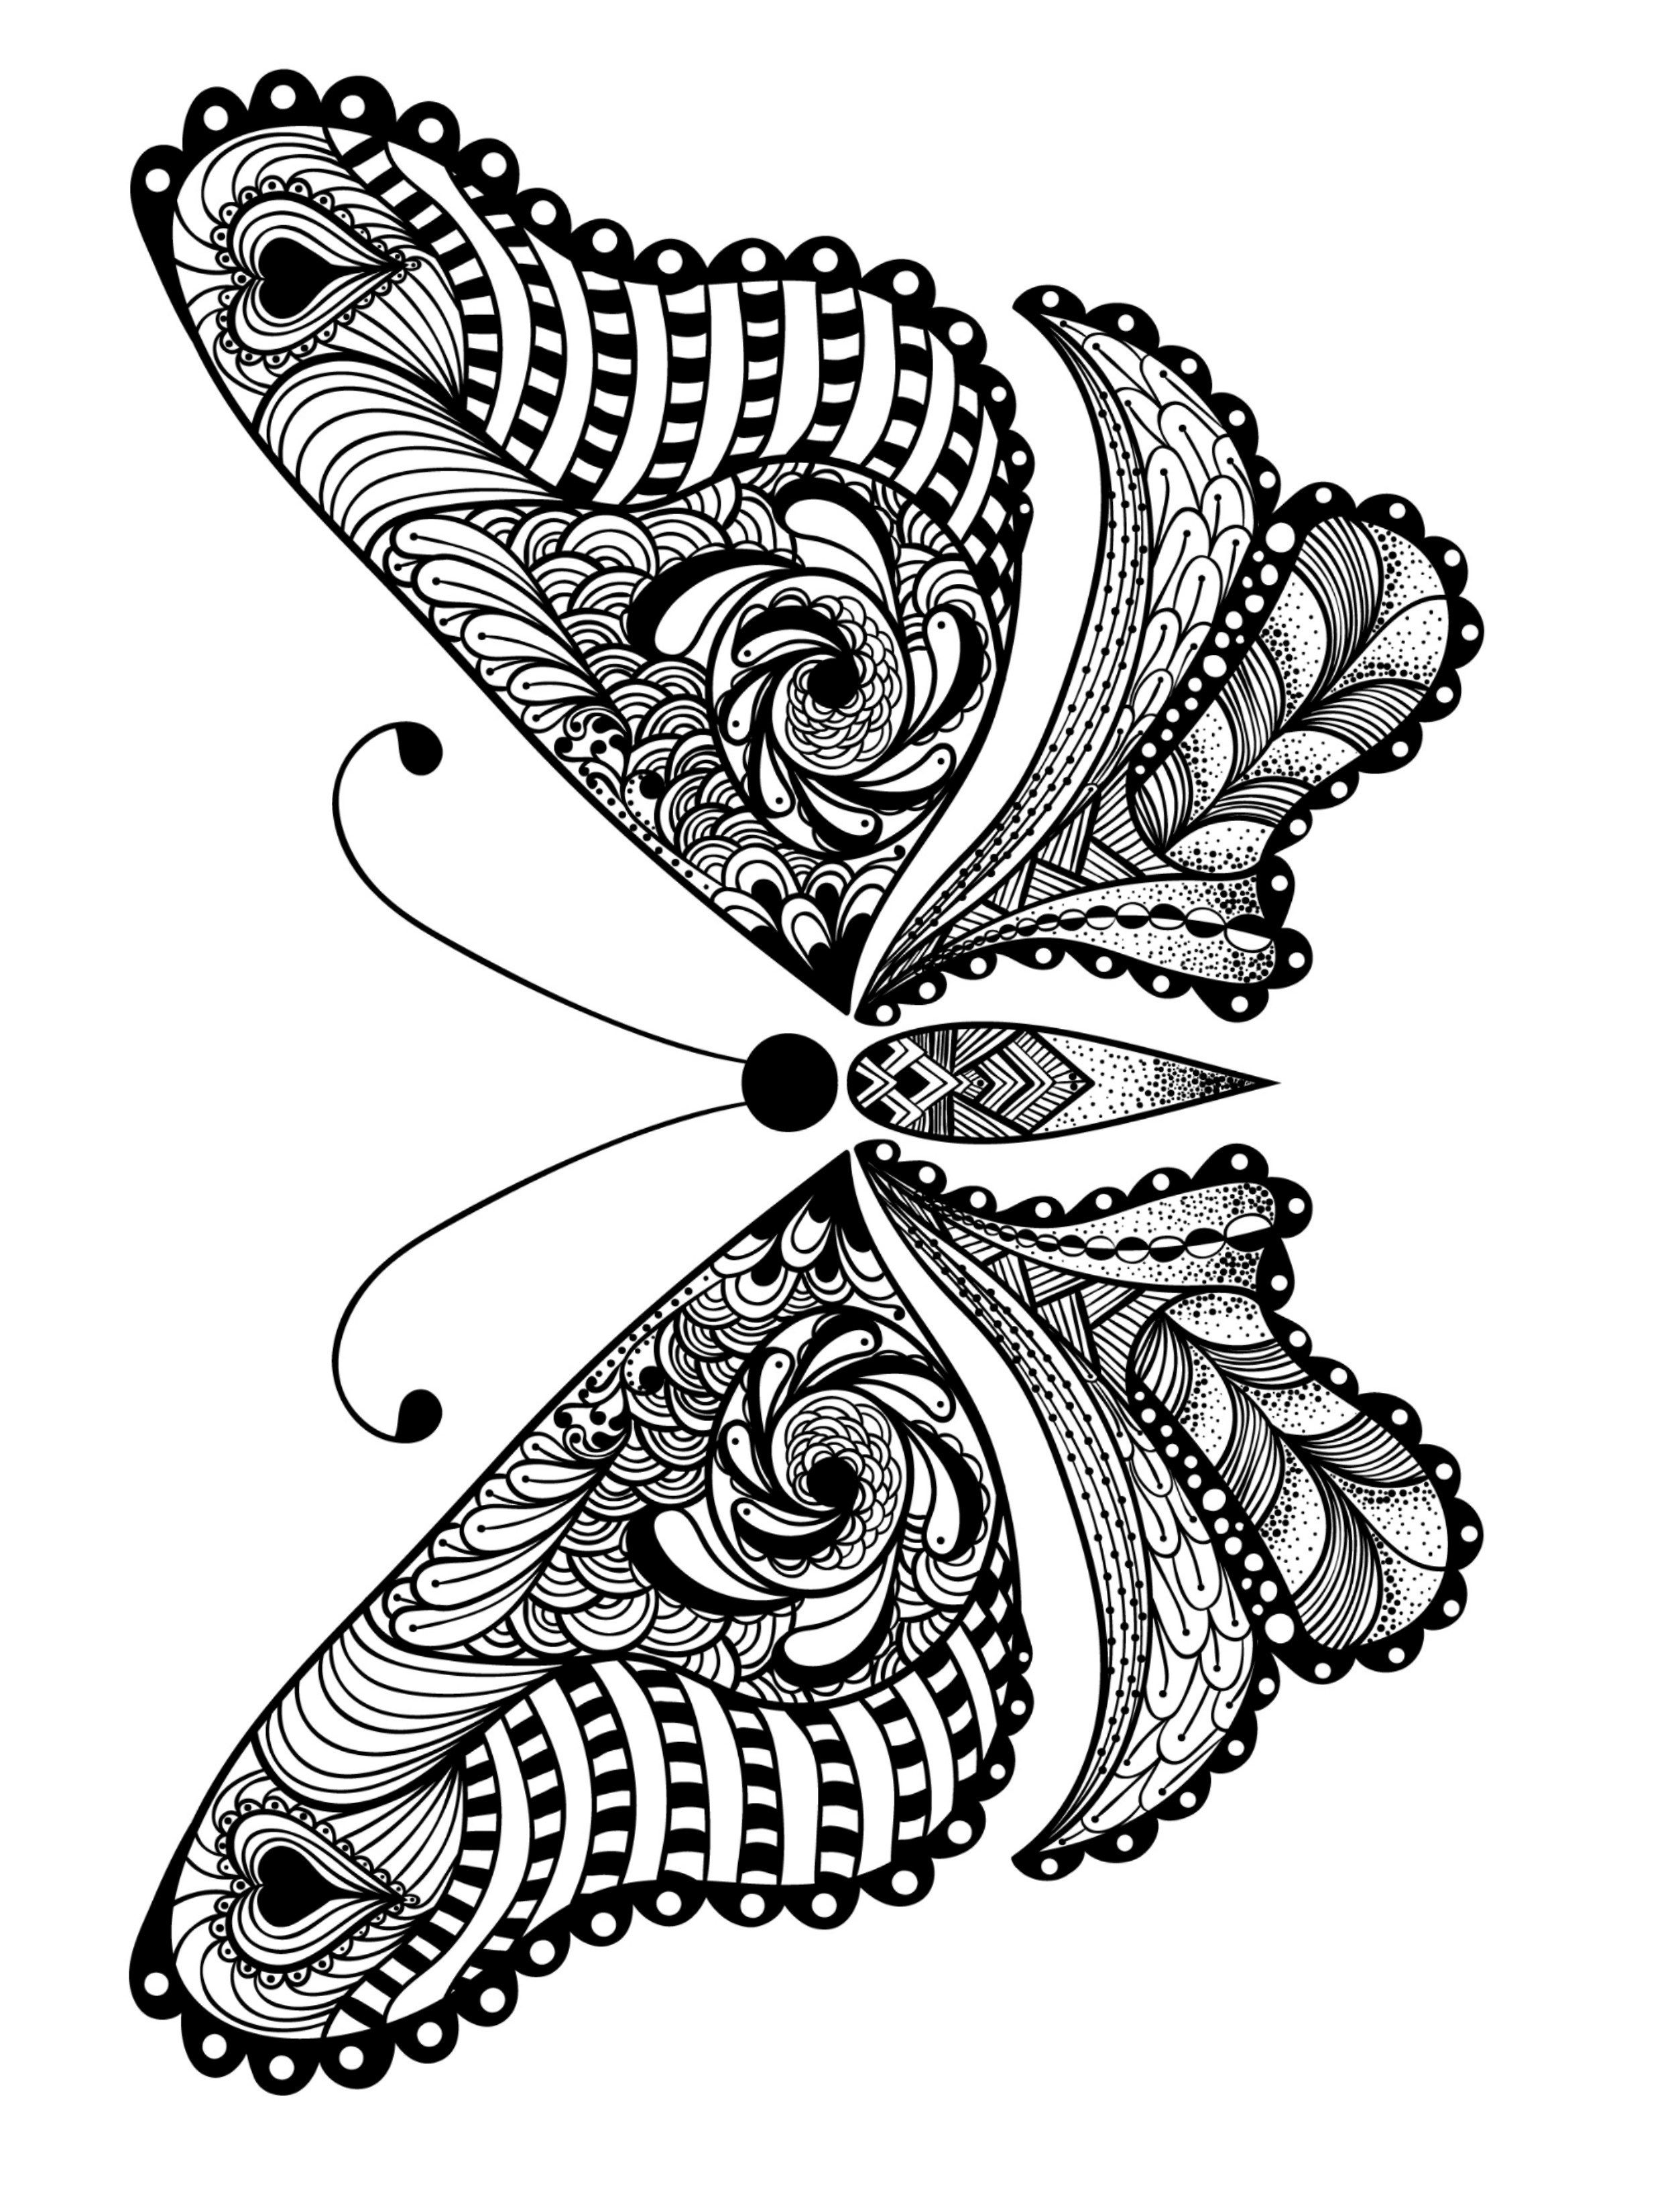 Free coloring pages of peacock feathers coloring everyday printable - 23 Free Printable Insect Animal Adult Coloring Pages